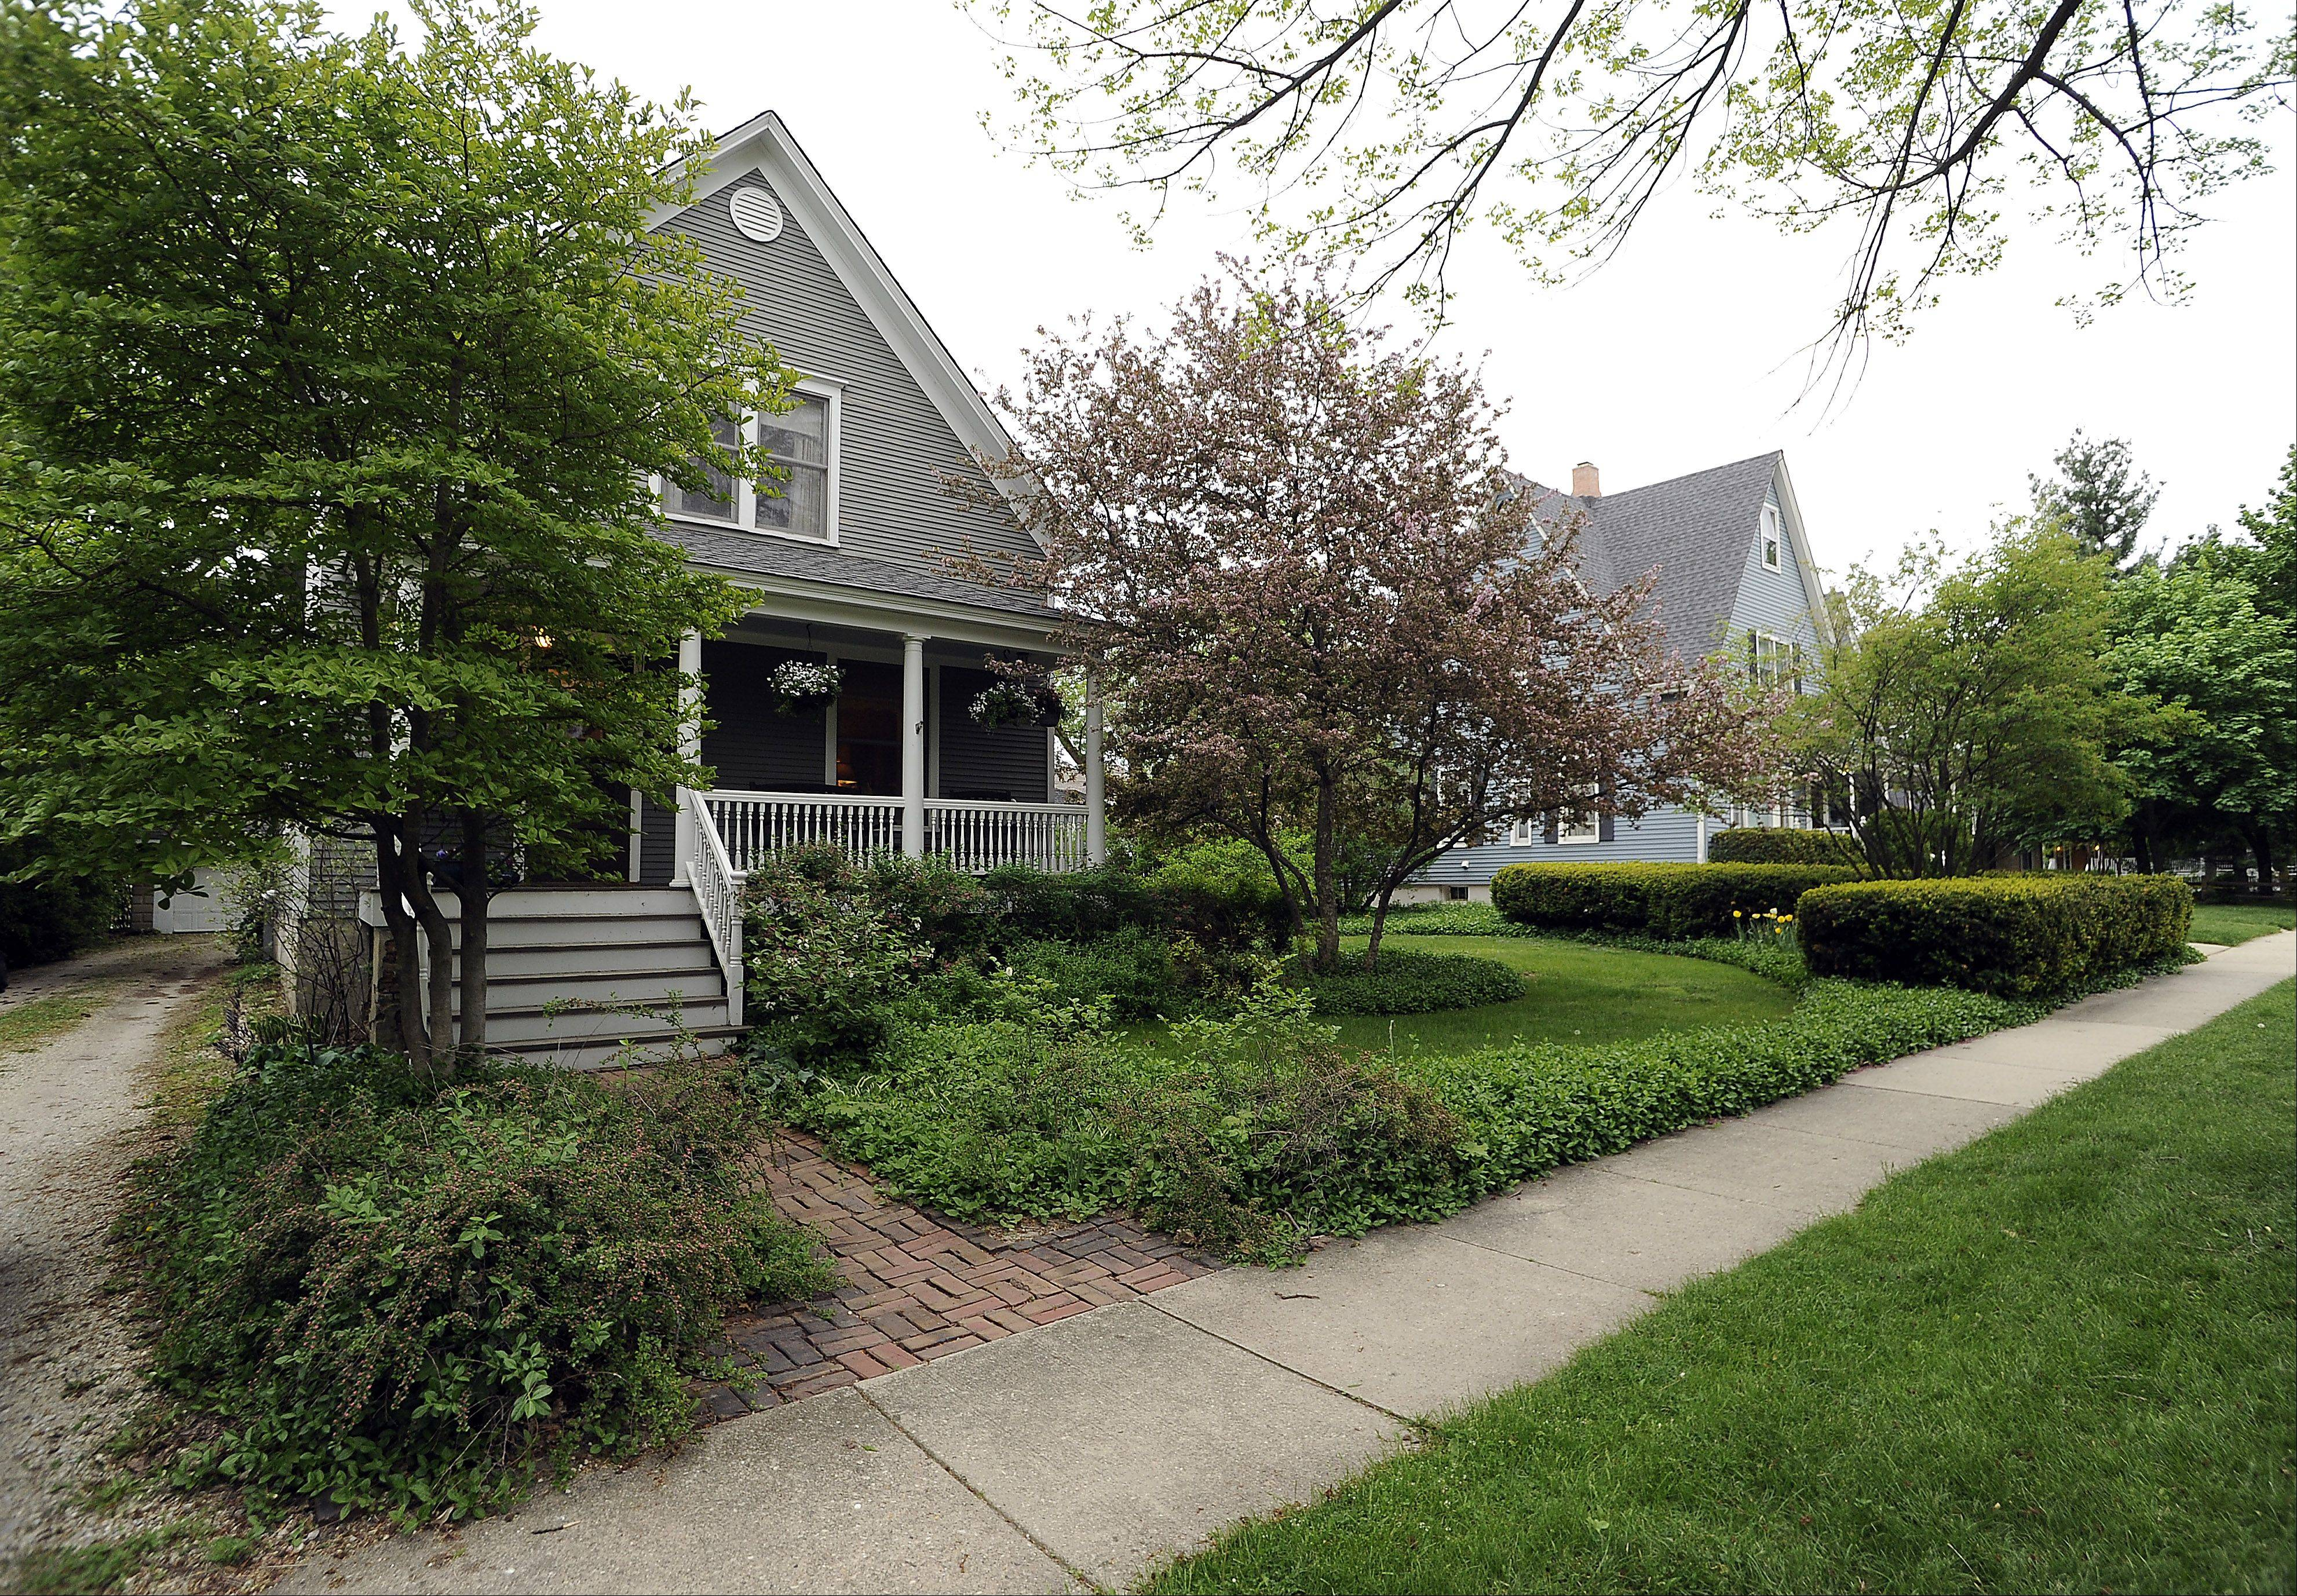 The antique house owes much to the charm of the Arlington Heights street where it stands.